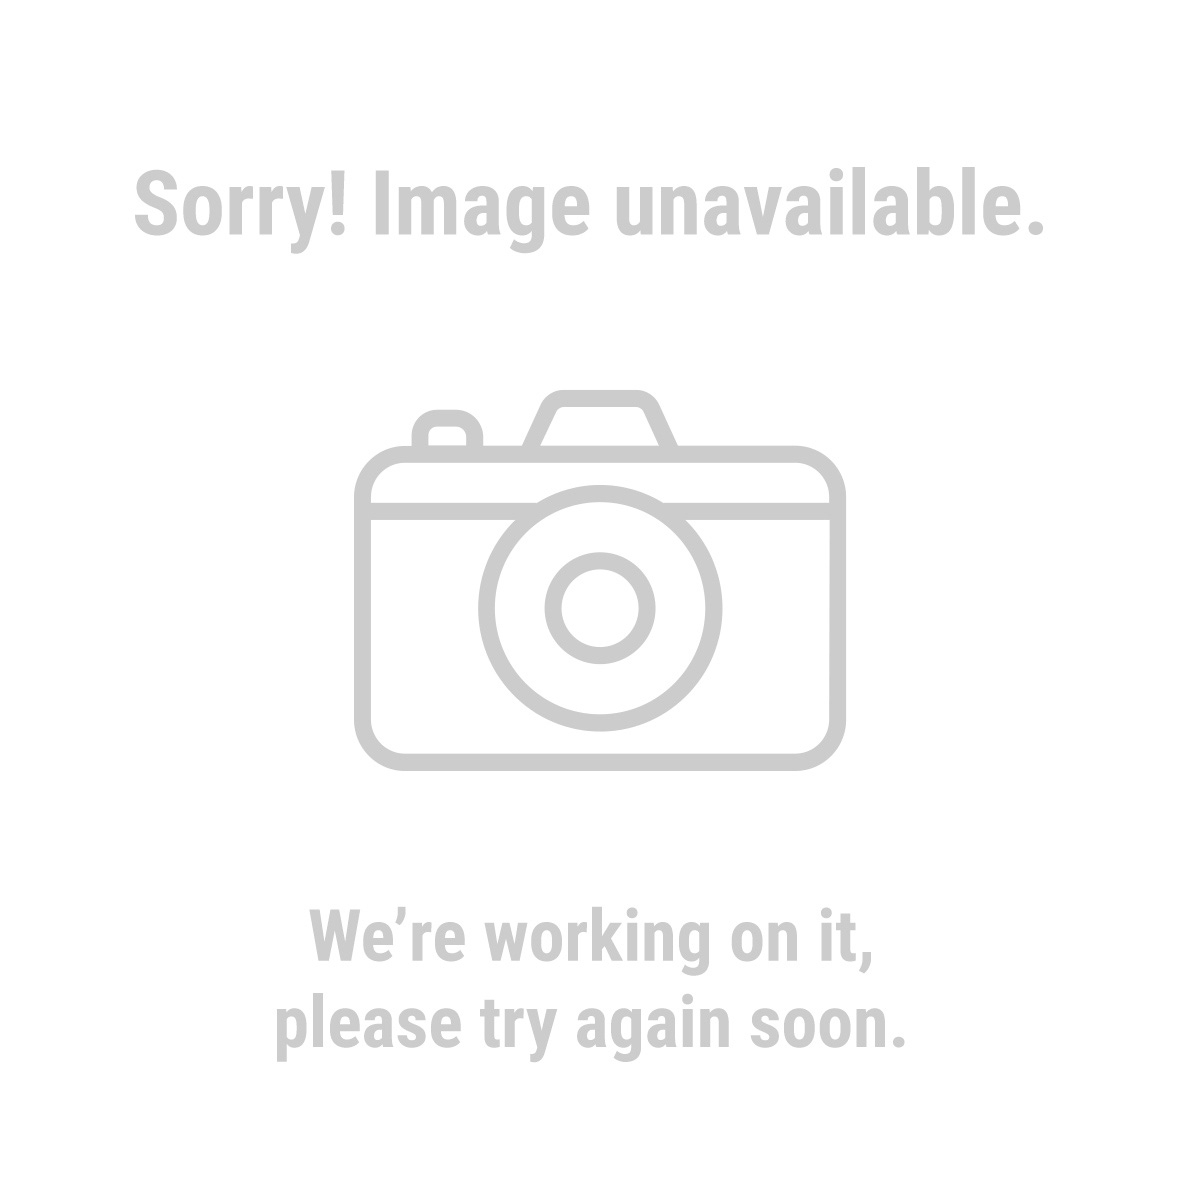 Badland Winches 68141 6000 lb. Off-Road Vehicle Winch with Automatic Load-Holding Brake